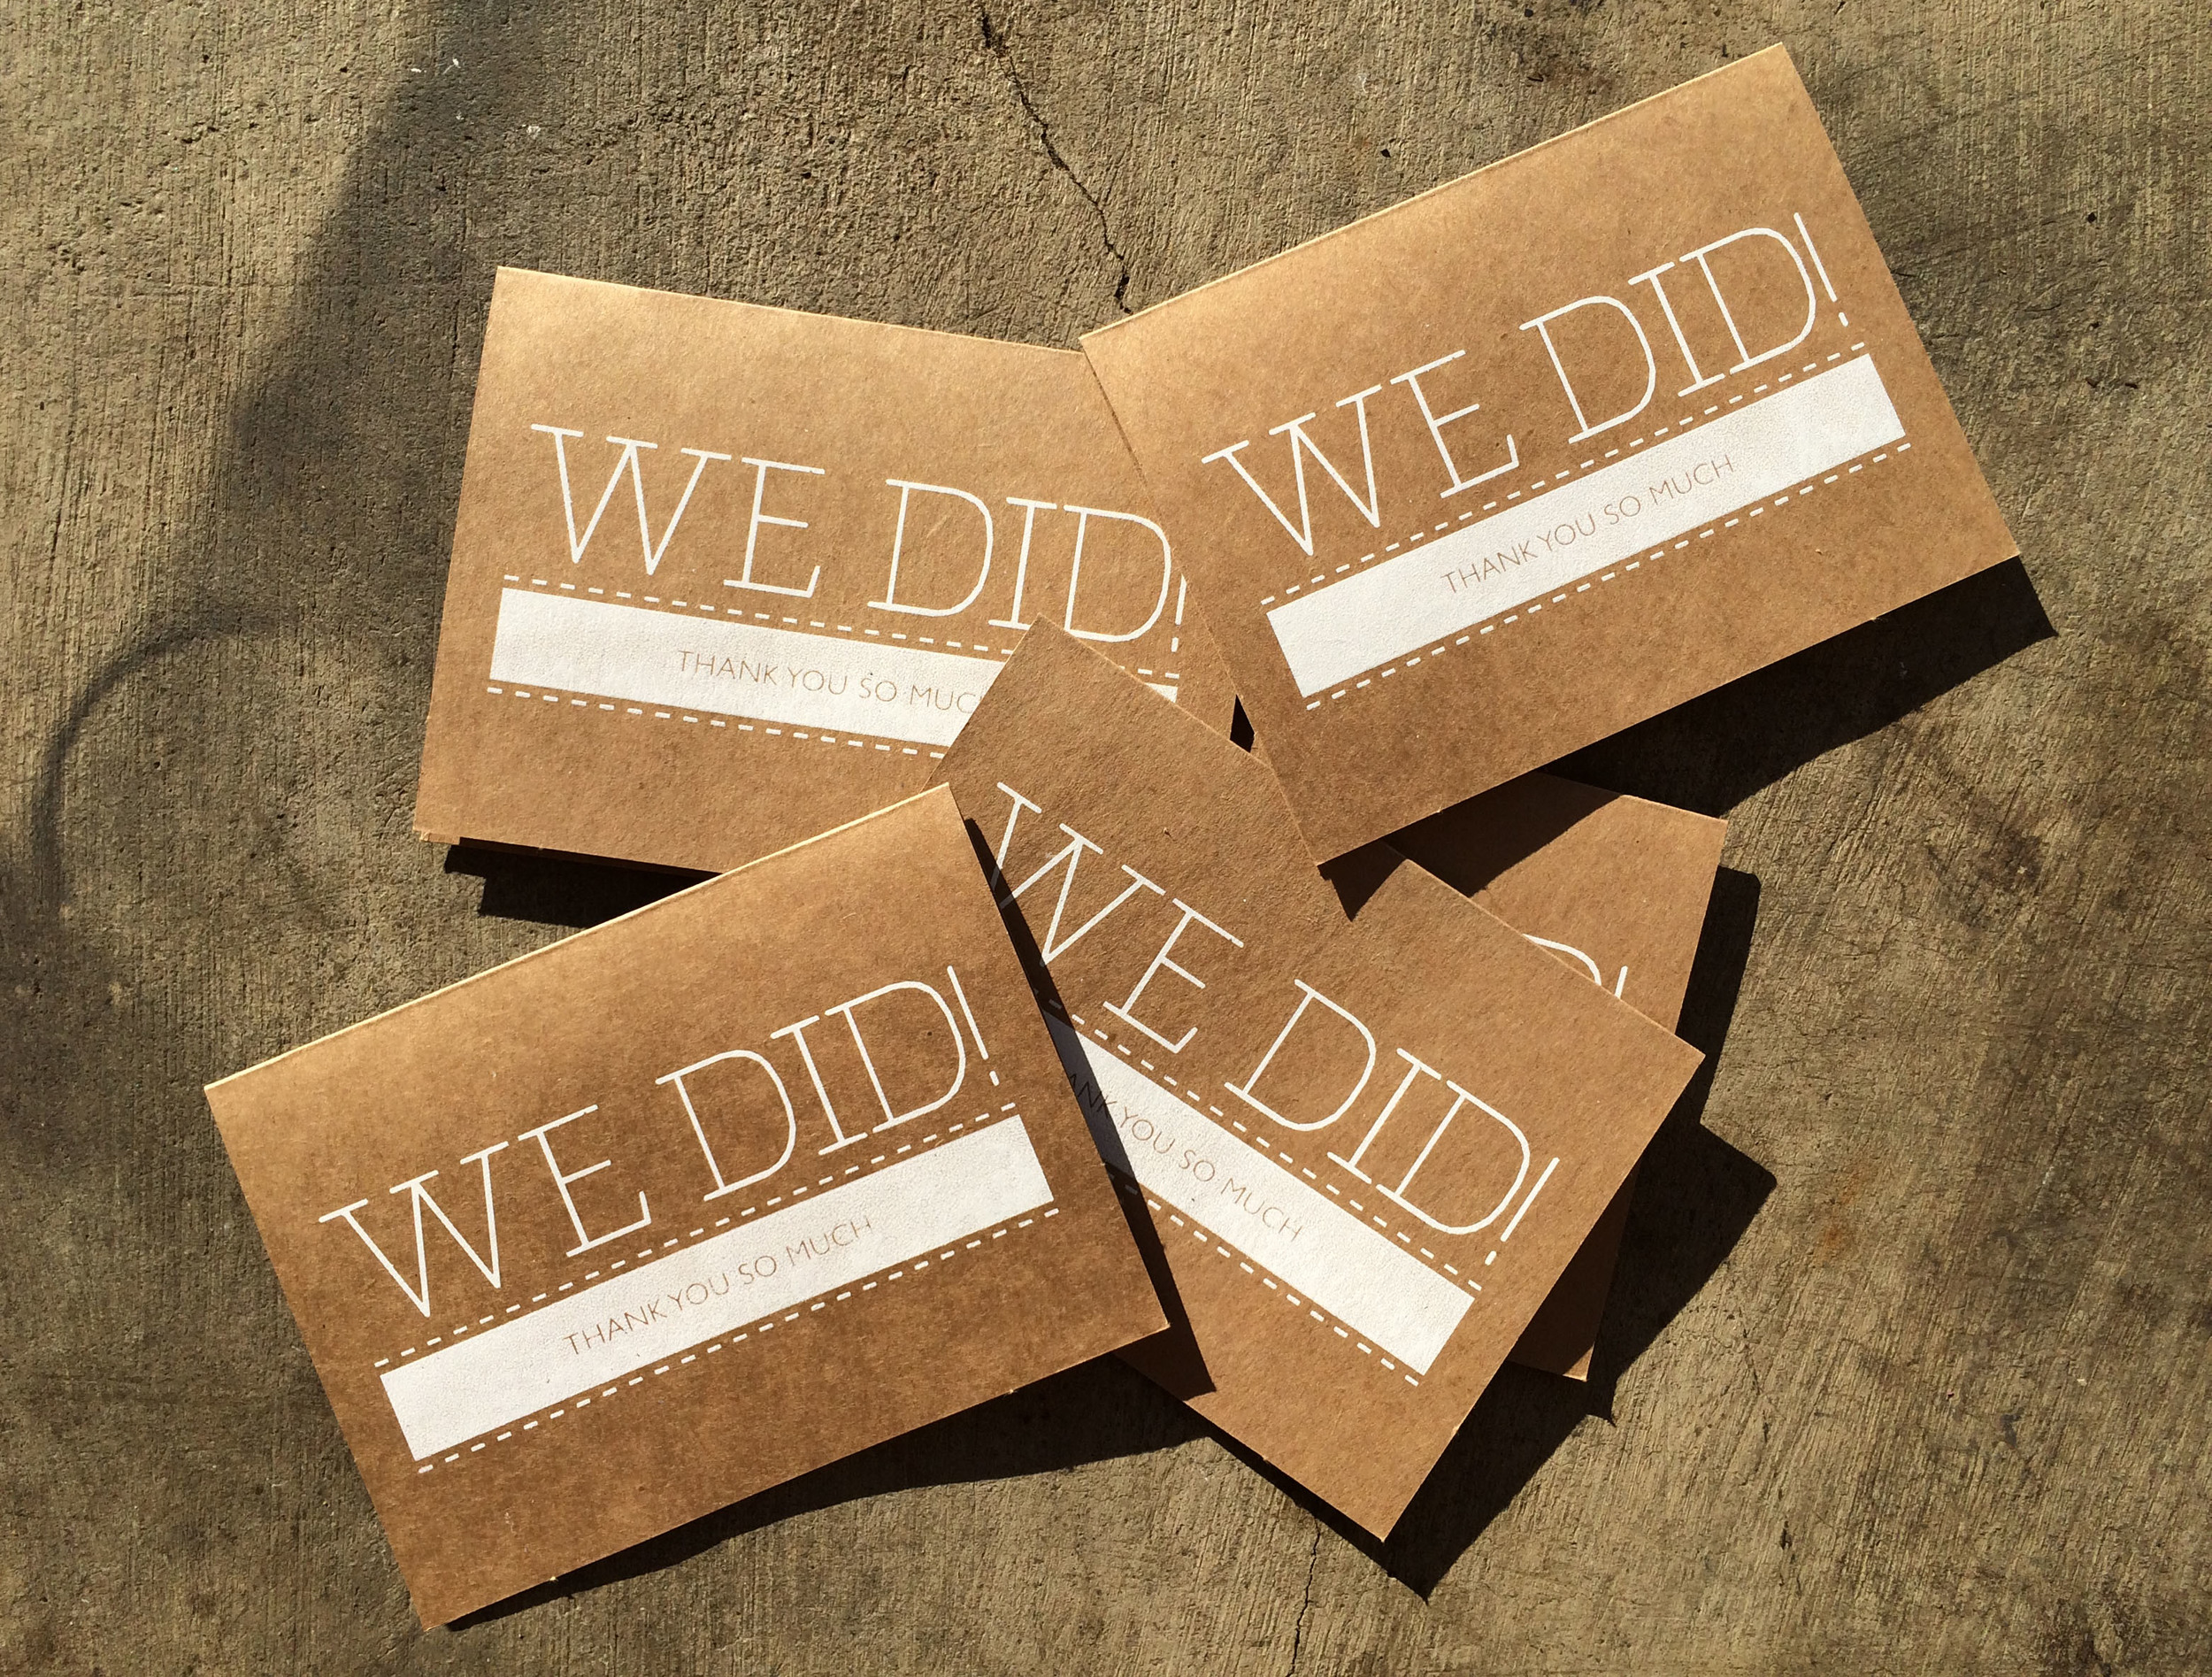 RISE bridal screen printed silkscreen wedding Thank You Cards Joel Loera 2